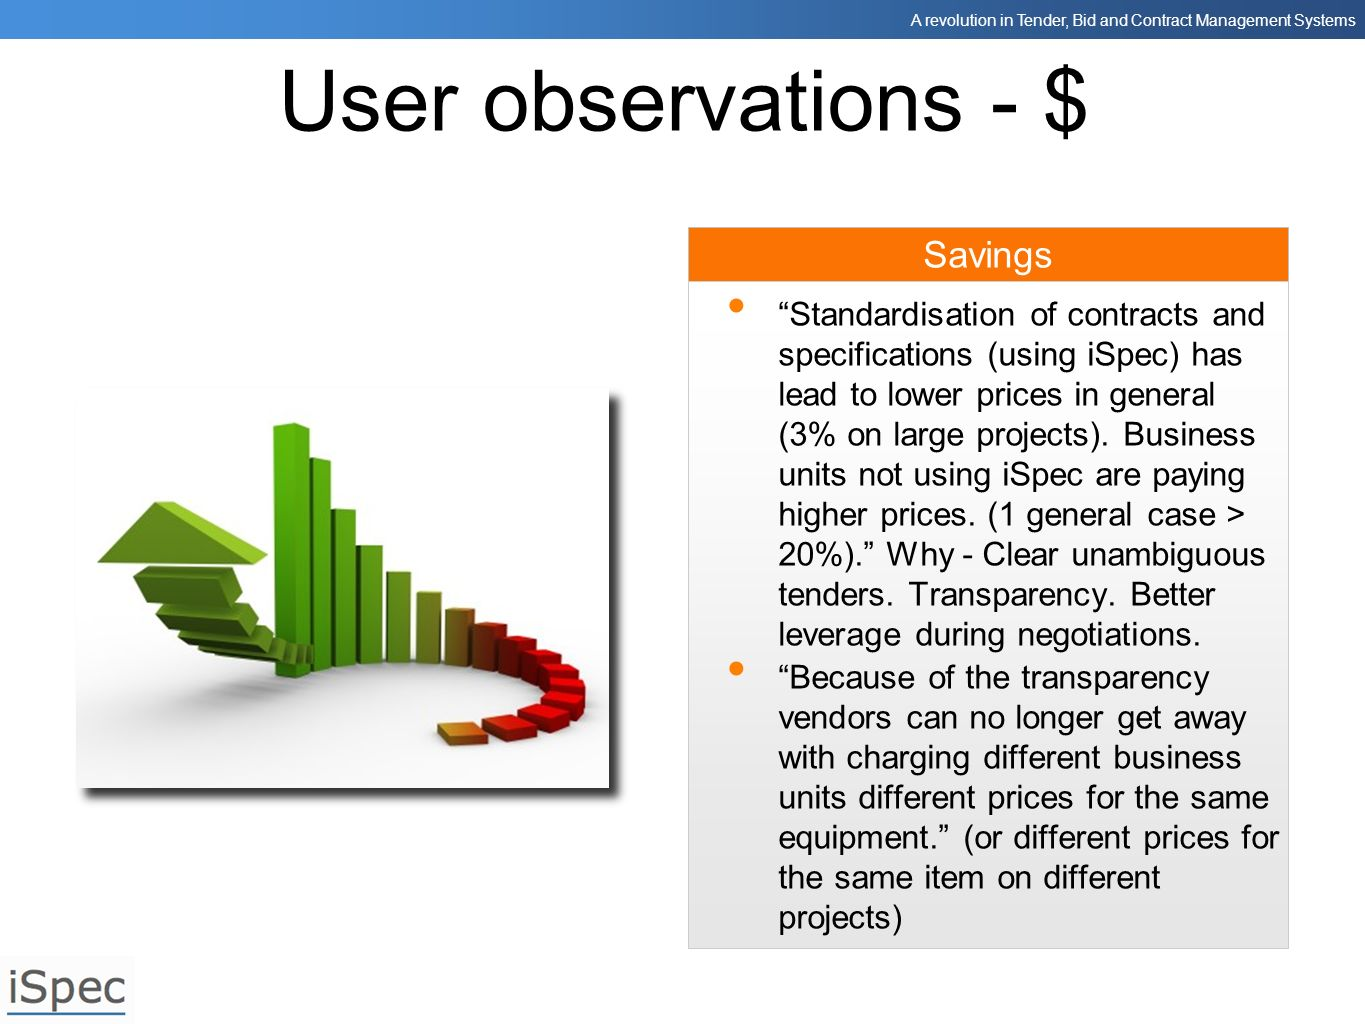 User observations - $ Savings